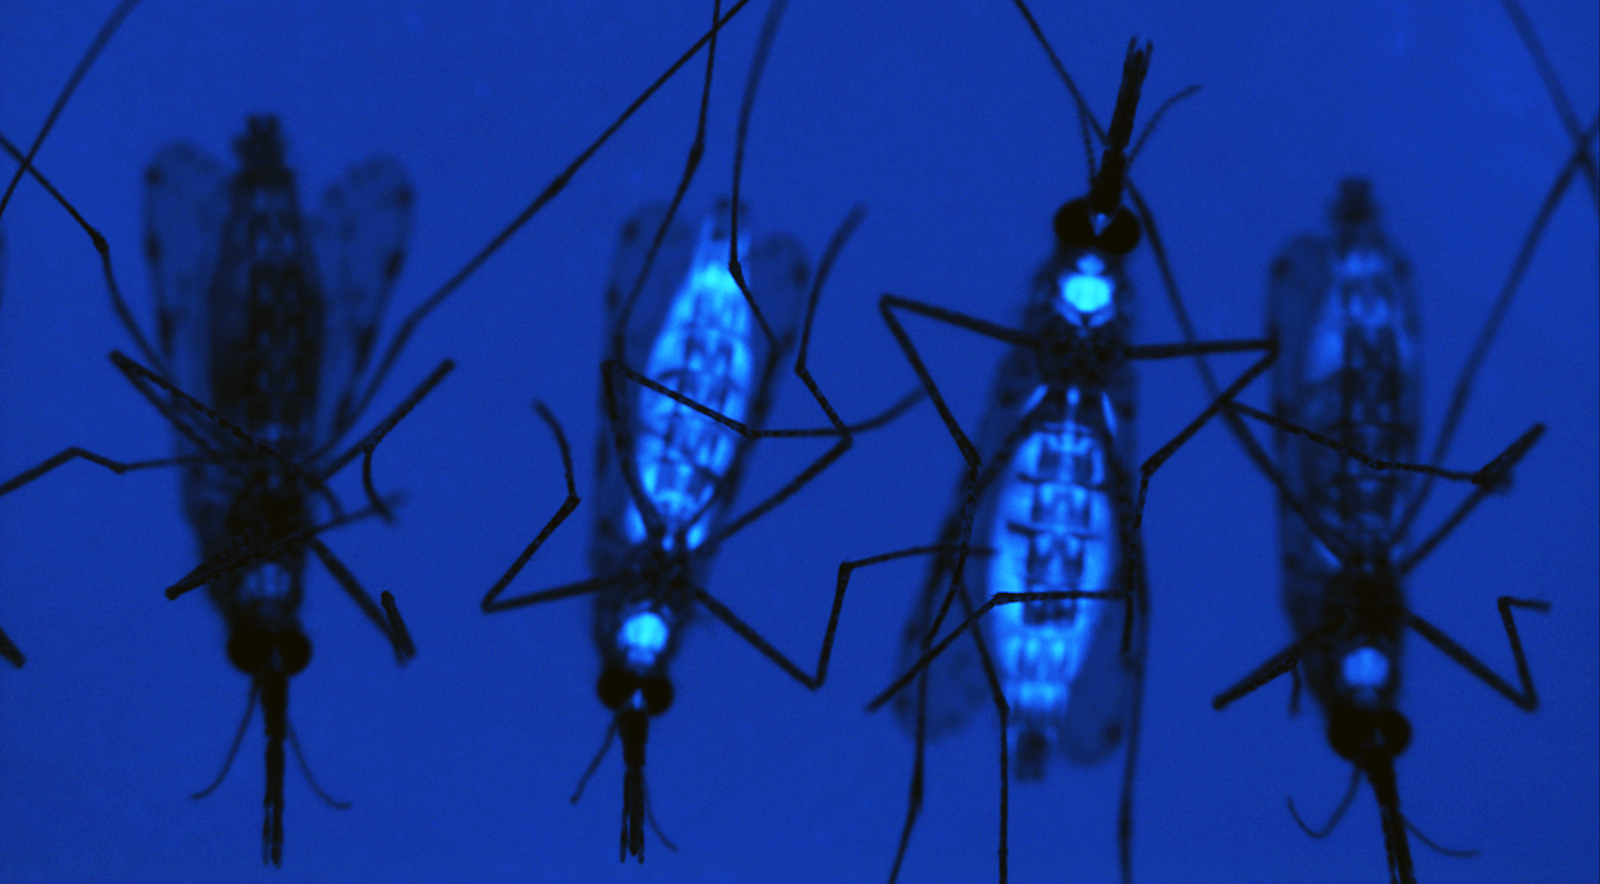 Transgenic female mosquitoes expressing a fluorescent protein (blue) and nontransgenic (no color). Image courtesy of A.A. James